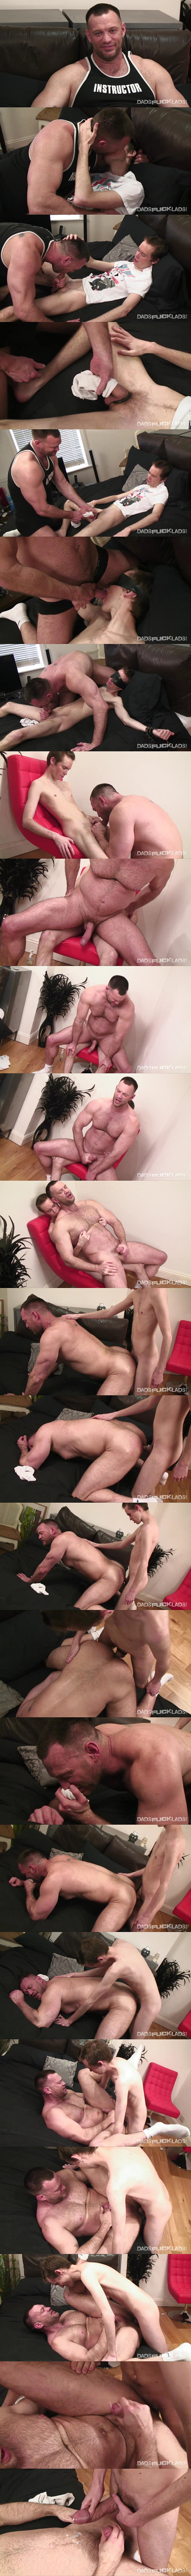 Skinny hung lad Steven Prior fucks masculine Aussie daddy Aaron Cage's big muscle butt in an older younger scene before he fucks the cum out of Aaron at Twinktop 01